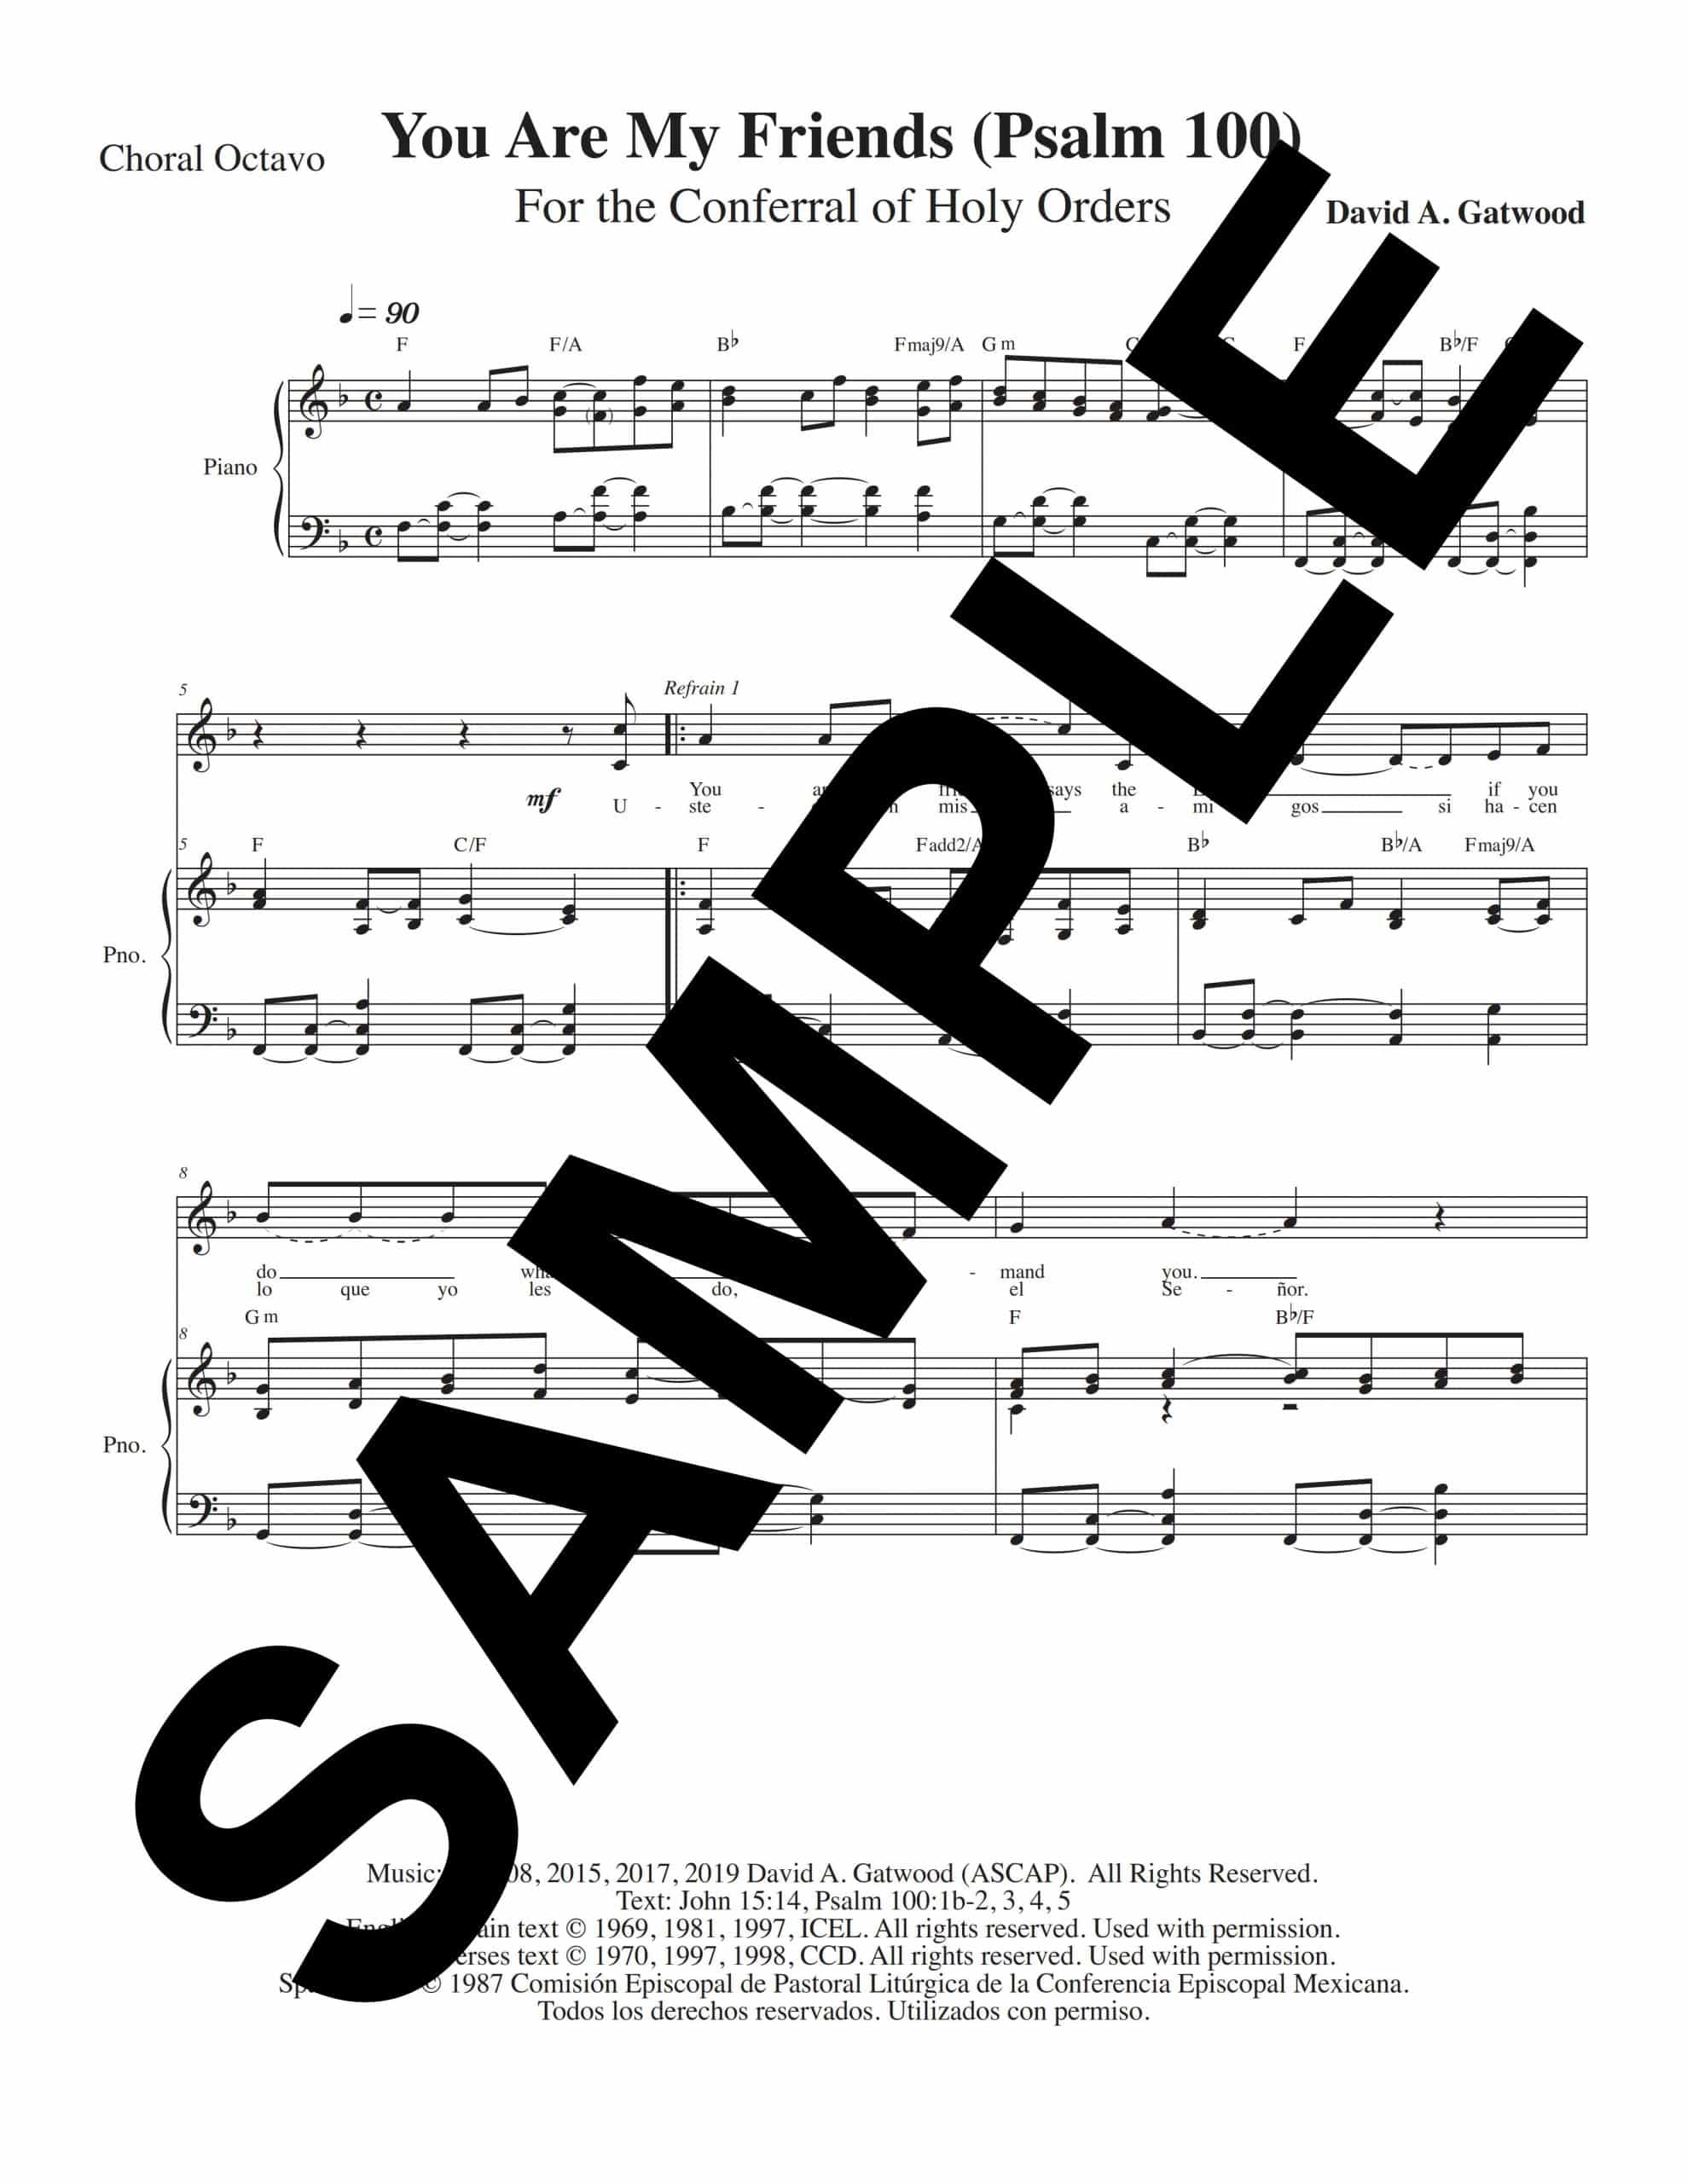 You Are My Friends Psalm 100 Sample Choral Octavo scaled